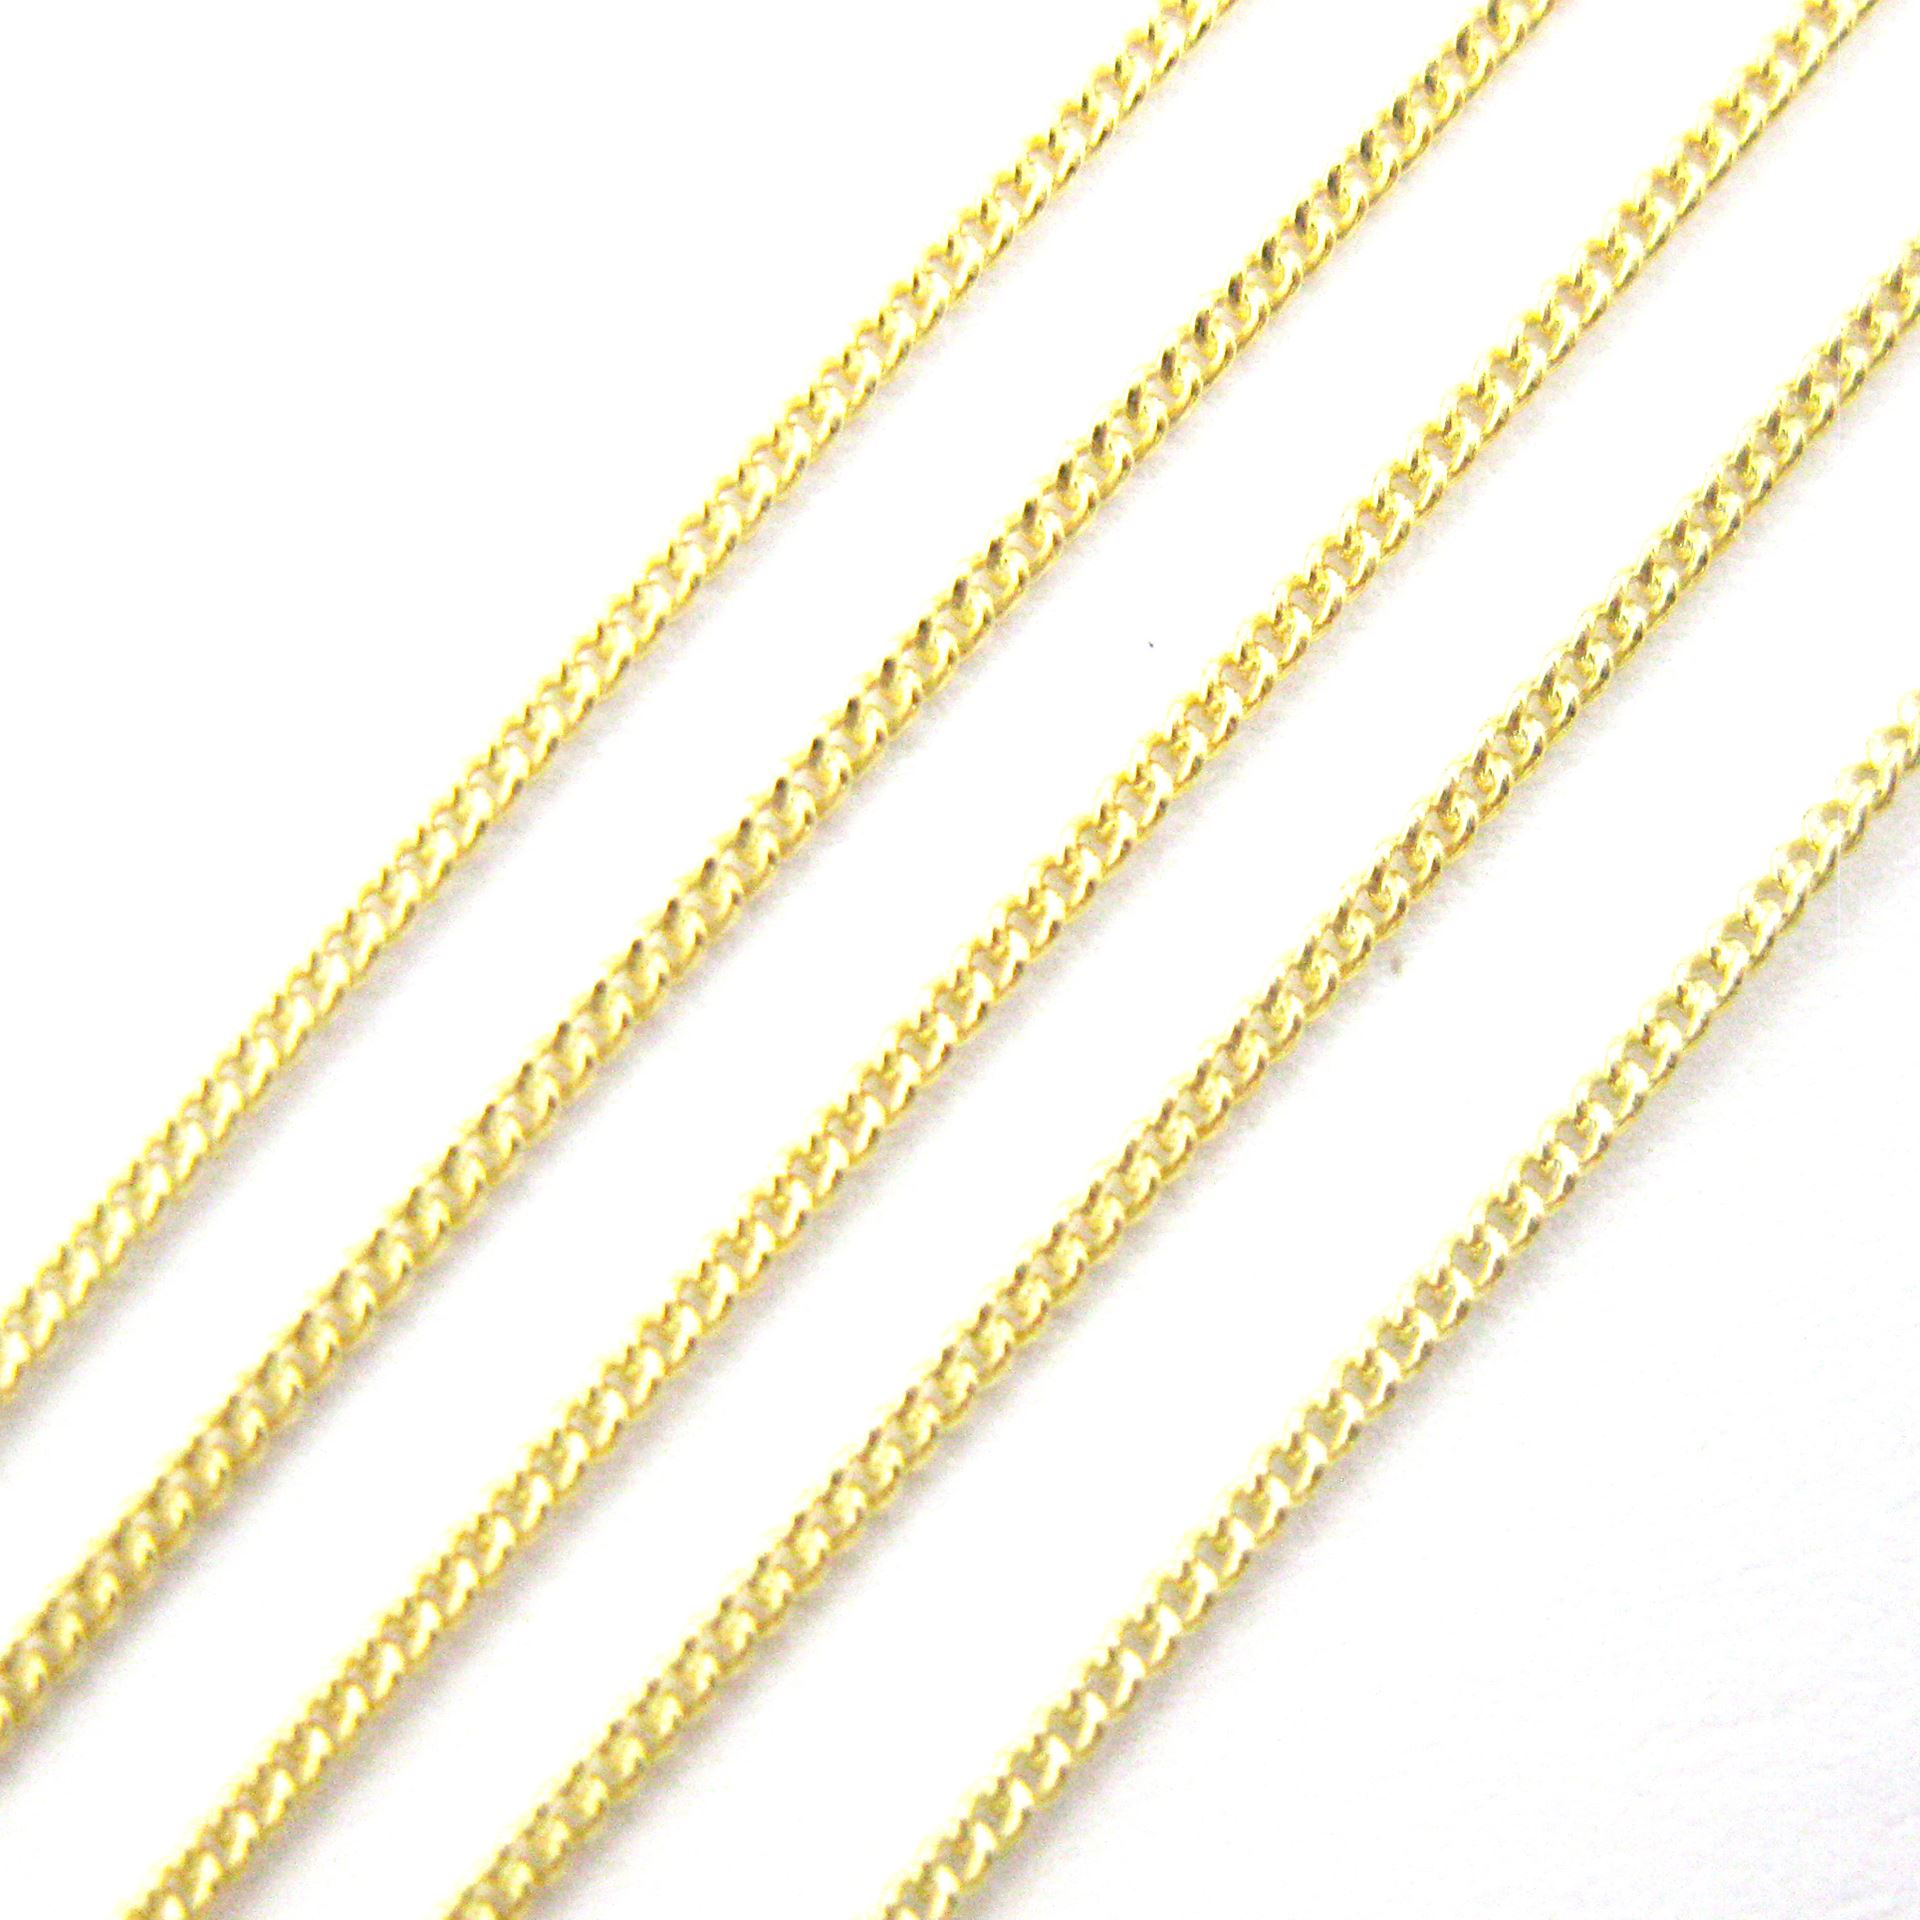 Gold plated Sterling Silver 1mm Tiny Curb Chain. Bulk Unfinished Chain for Jewelry Making. Sold By the Foot